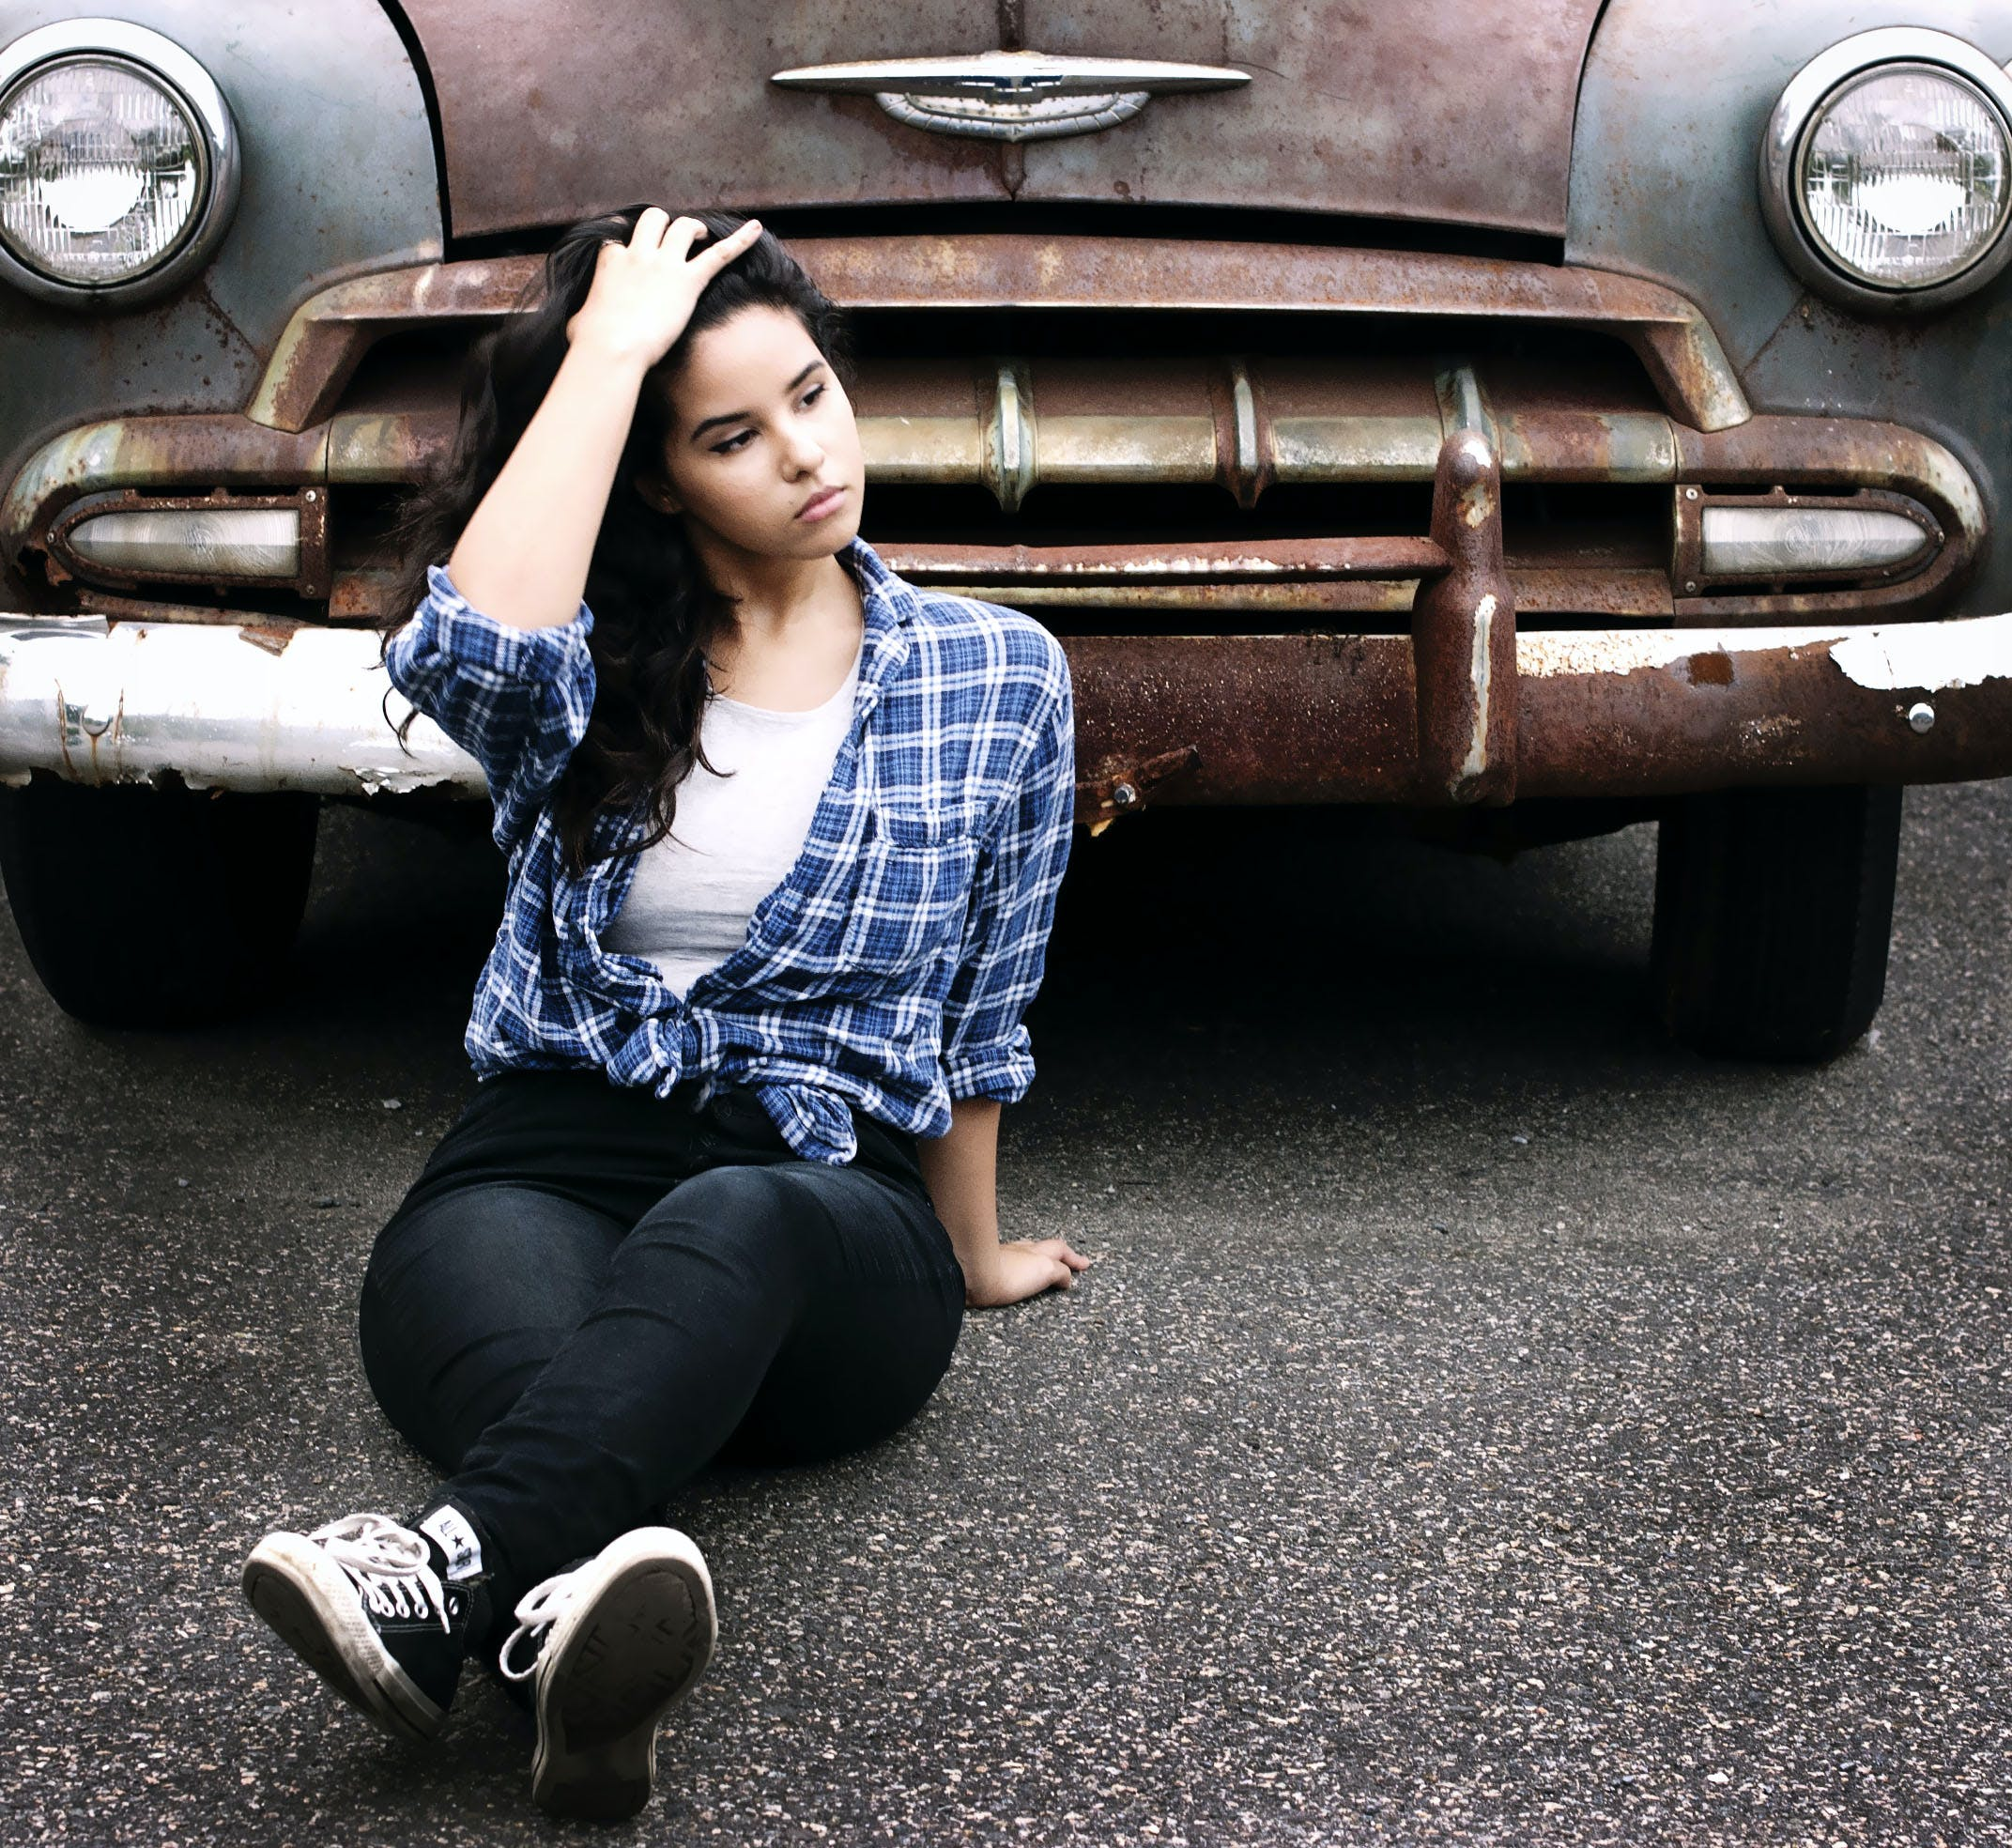 Woman in Blue Sports Shirt Sitting Infront of Vintage Brown Car